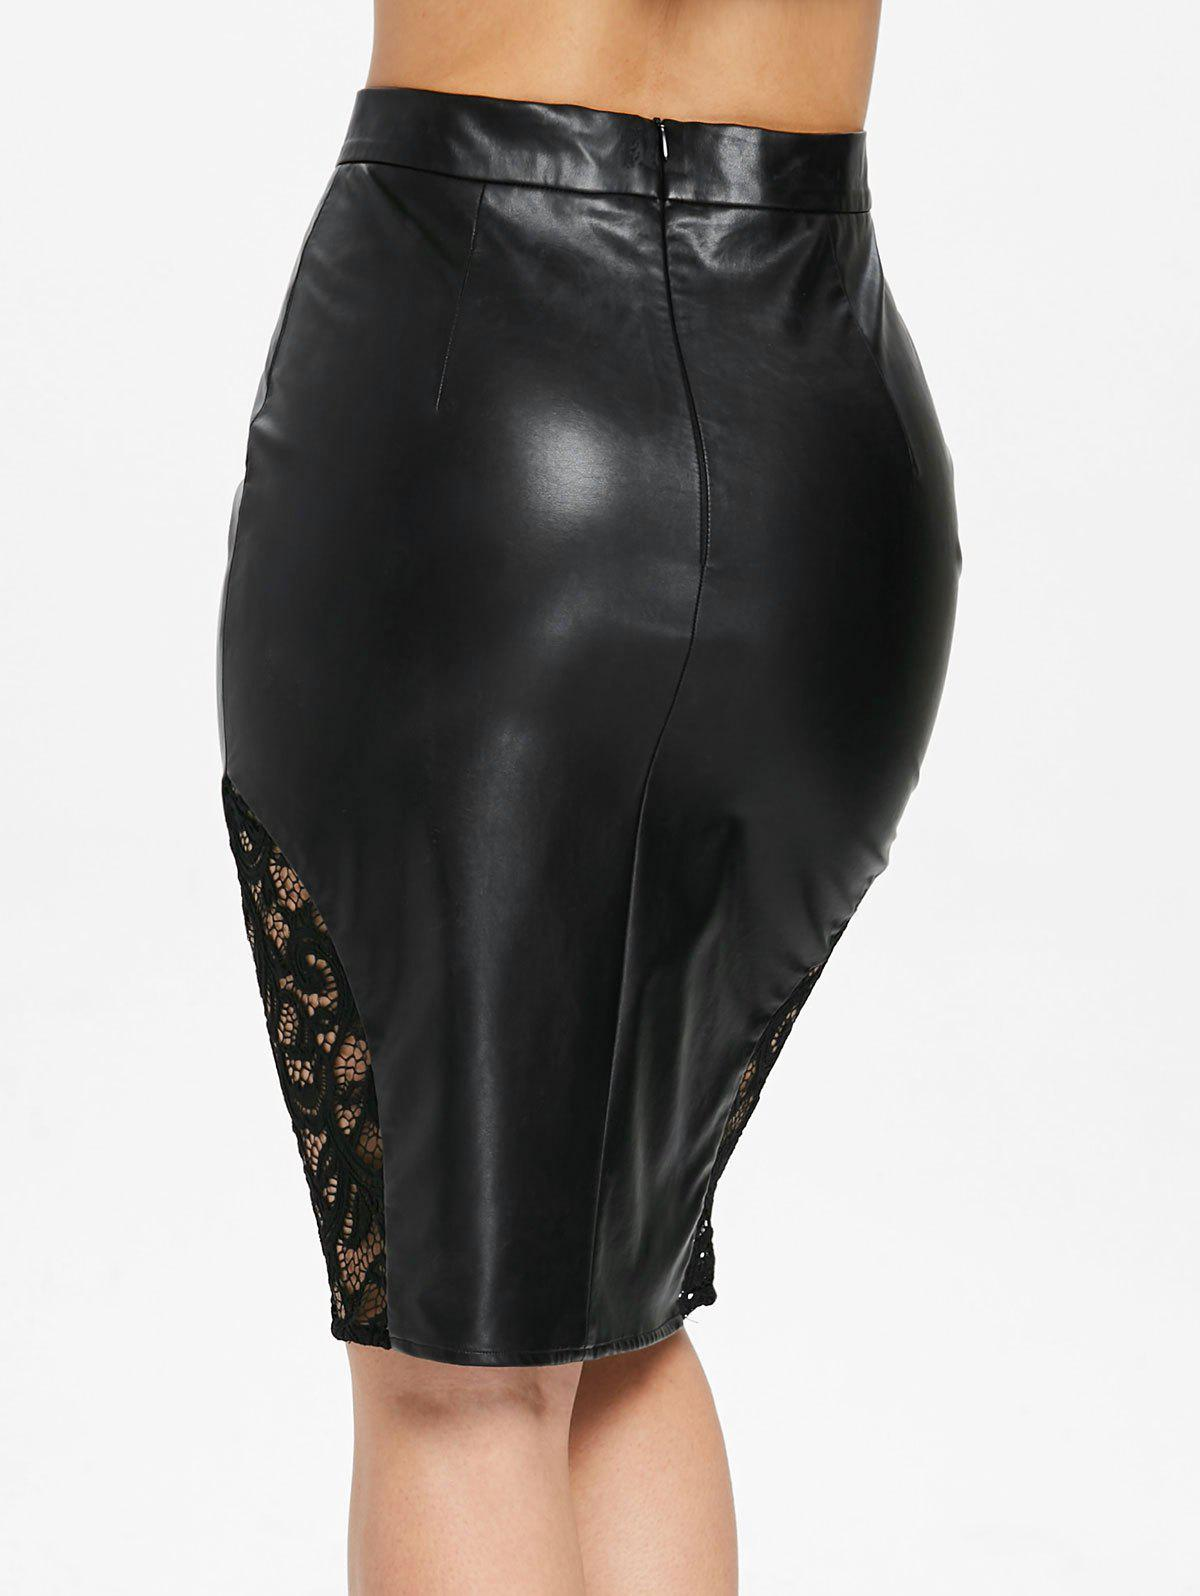 Openwork Lace Panel PU Leather Skirt -